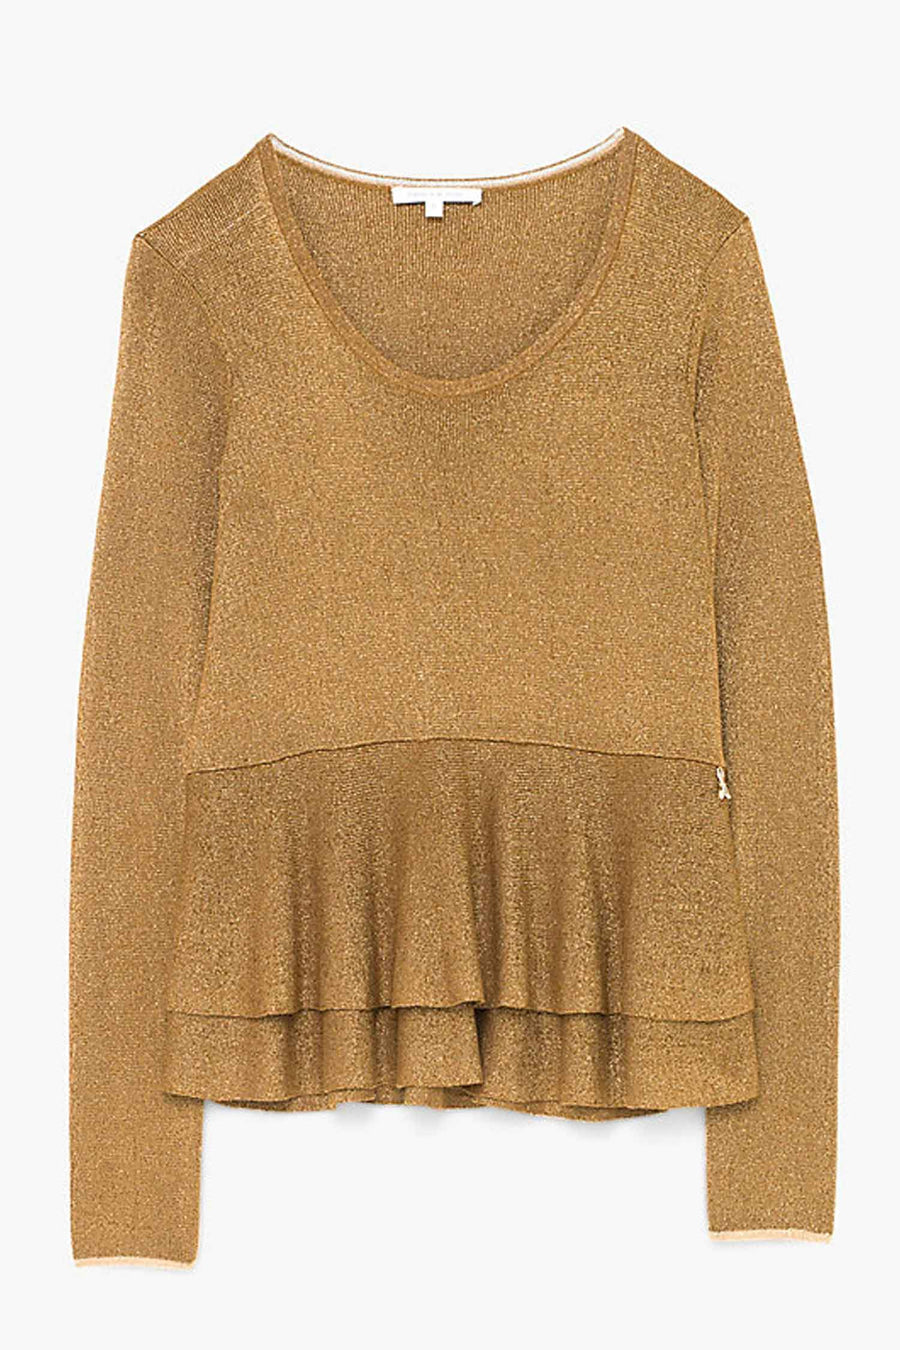 Shop Online Jumper by Patrizia Pepe  Frockaholics Tops